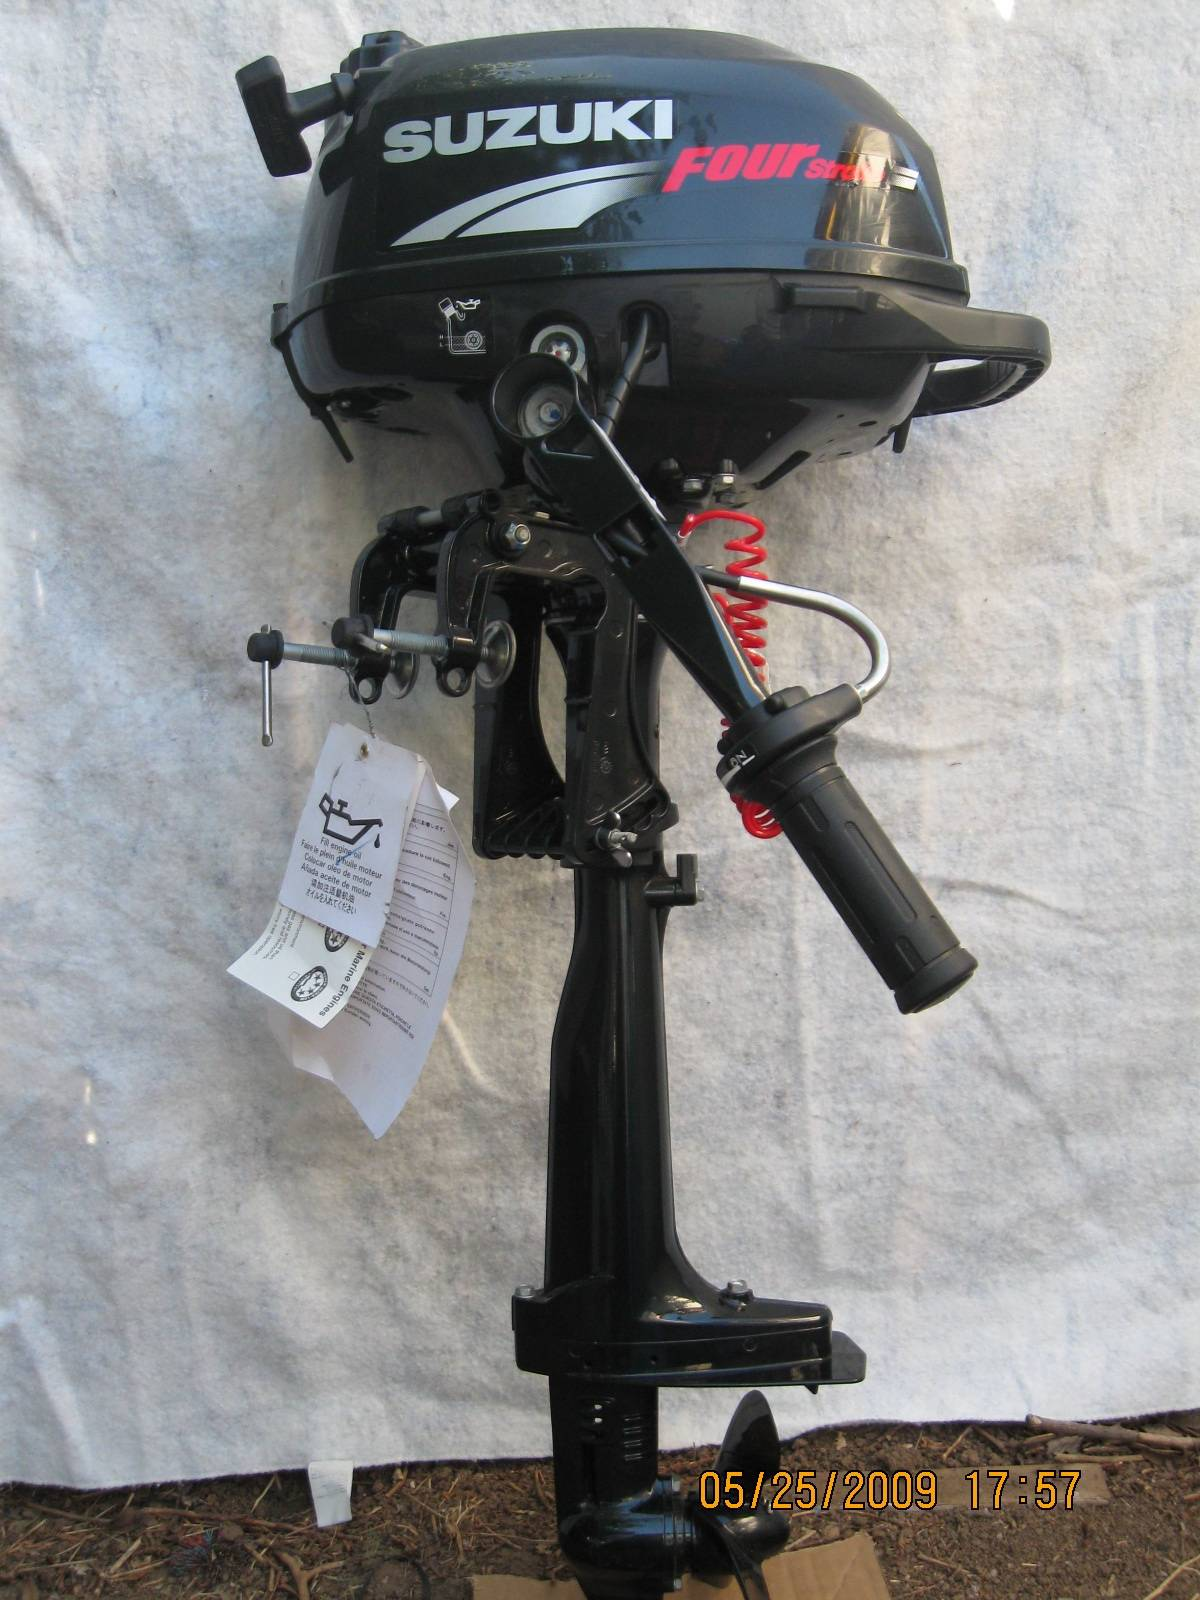 2.5 hp outboard motor reviews